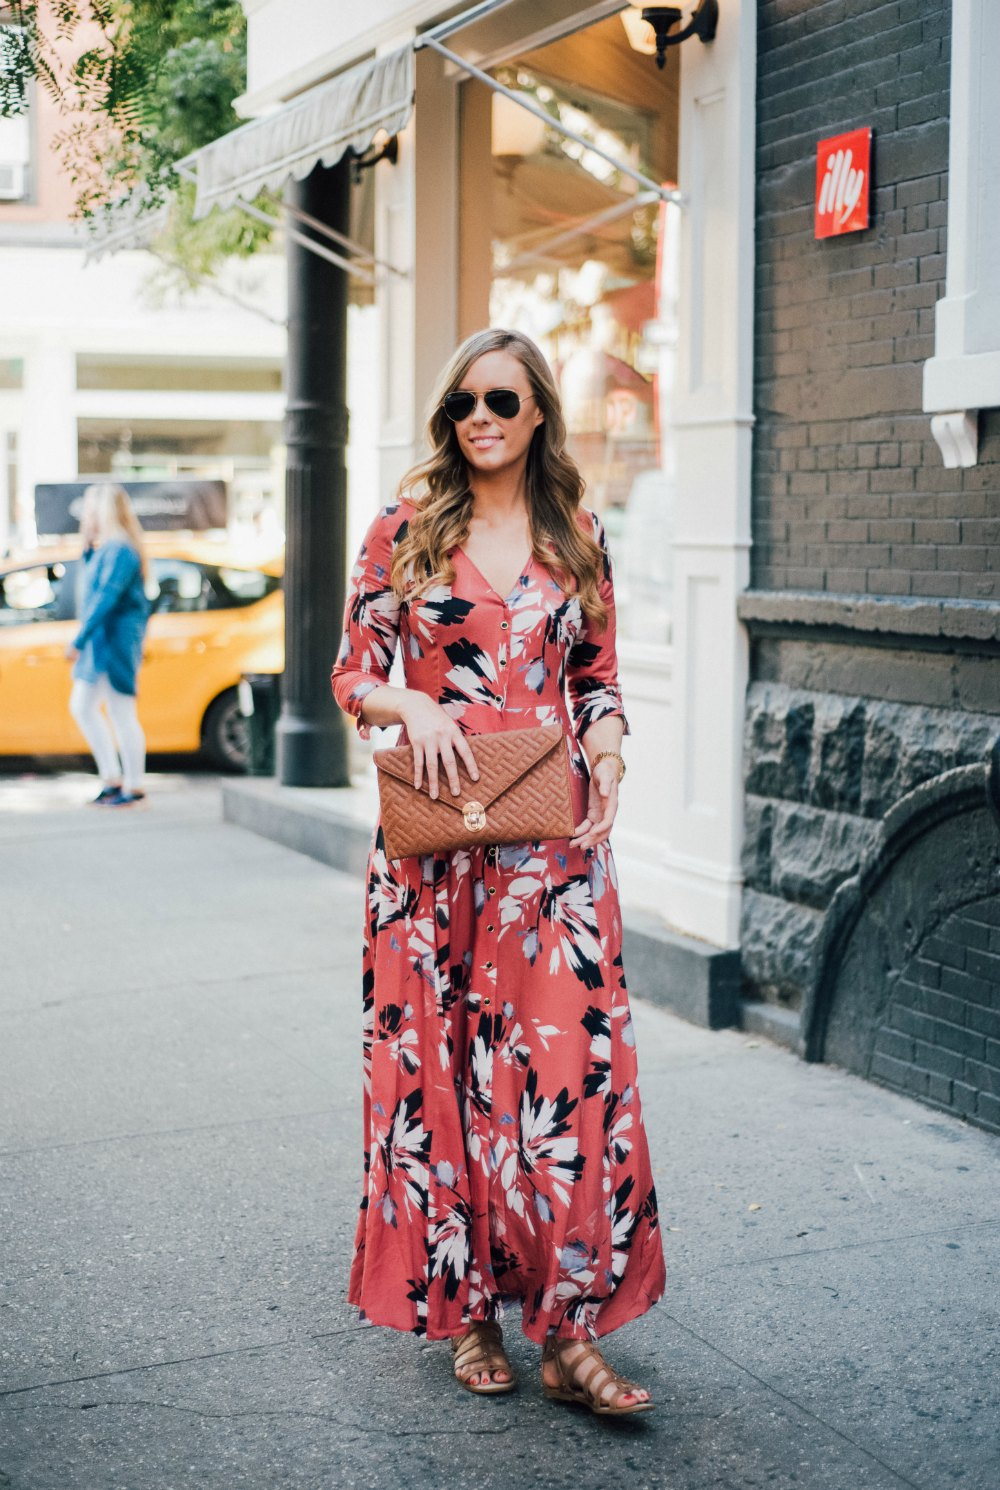 yumi kim maxi dress new york spring outfit soho lauren slade style elixir fashion blog 2